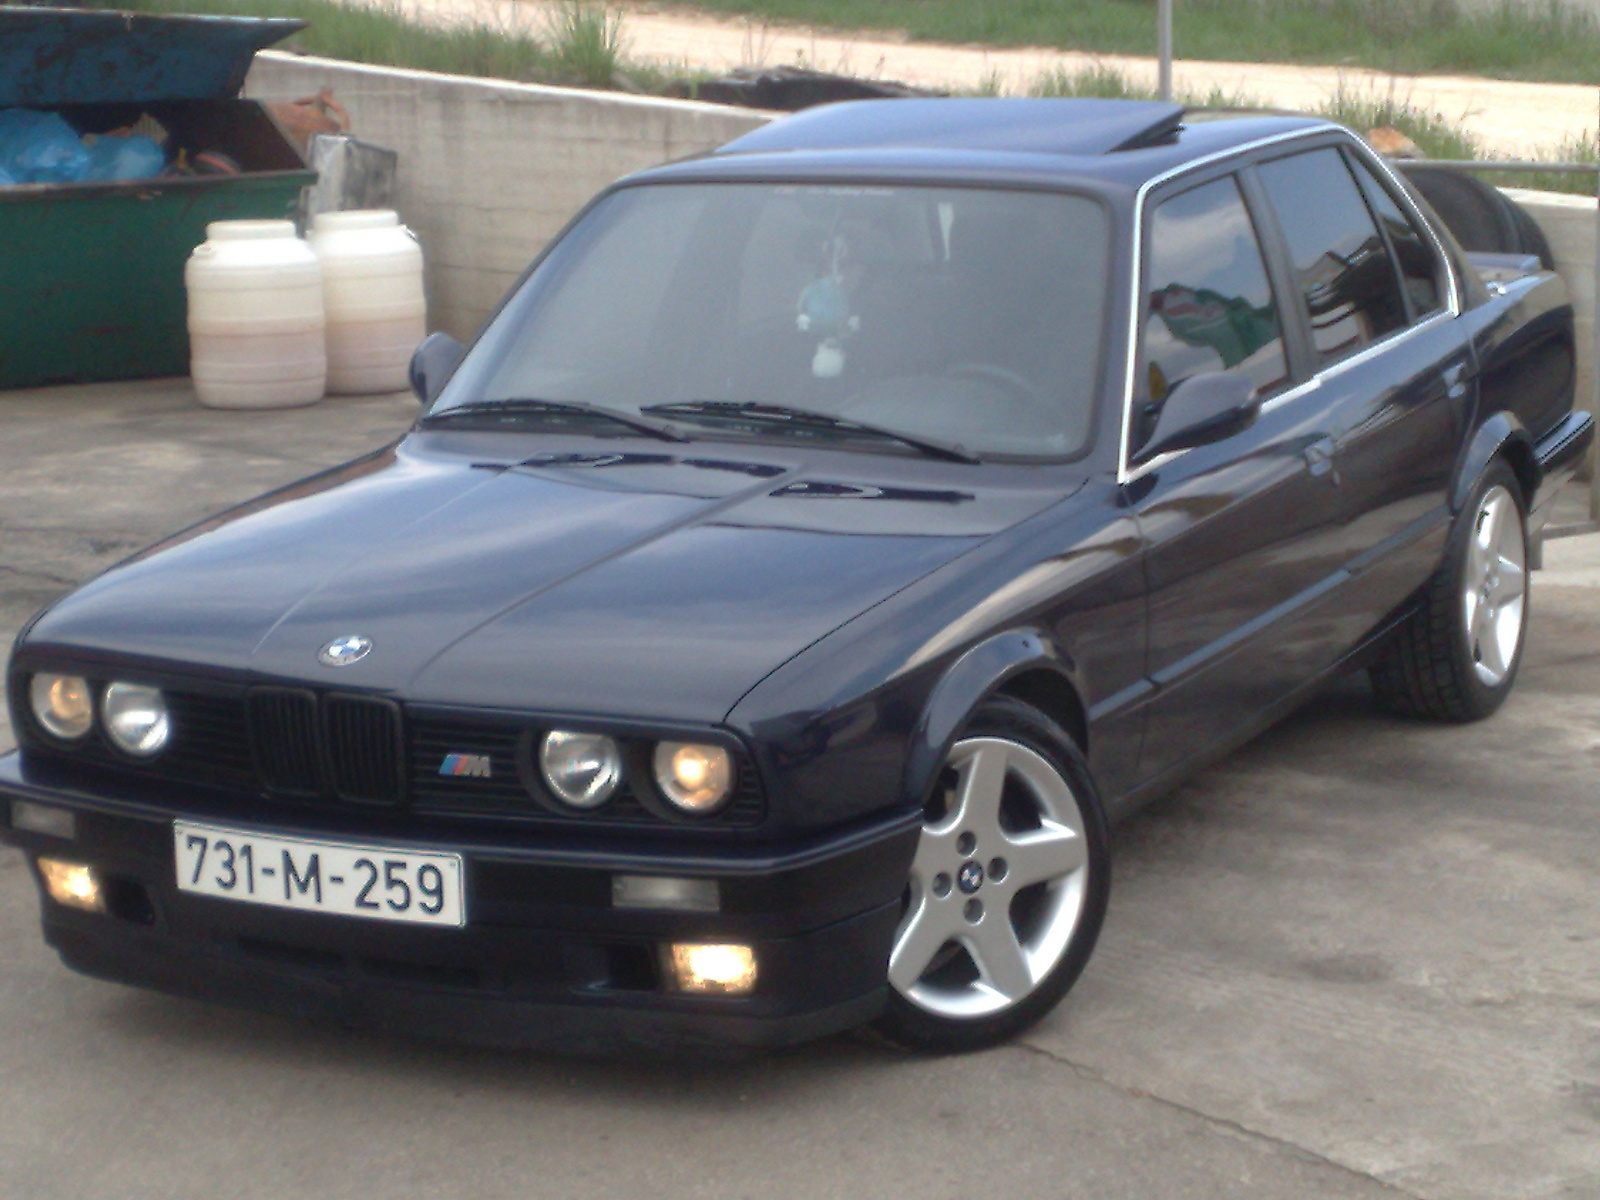 Bmw 323i 1990 Review Amazing Pictures And Images Look At The Car